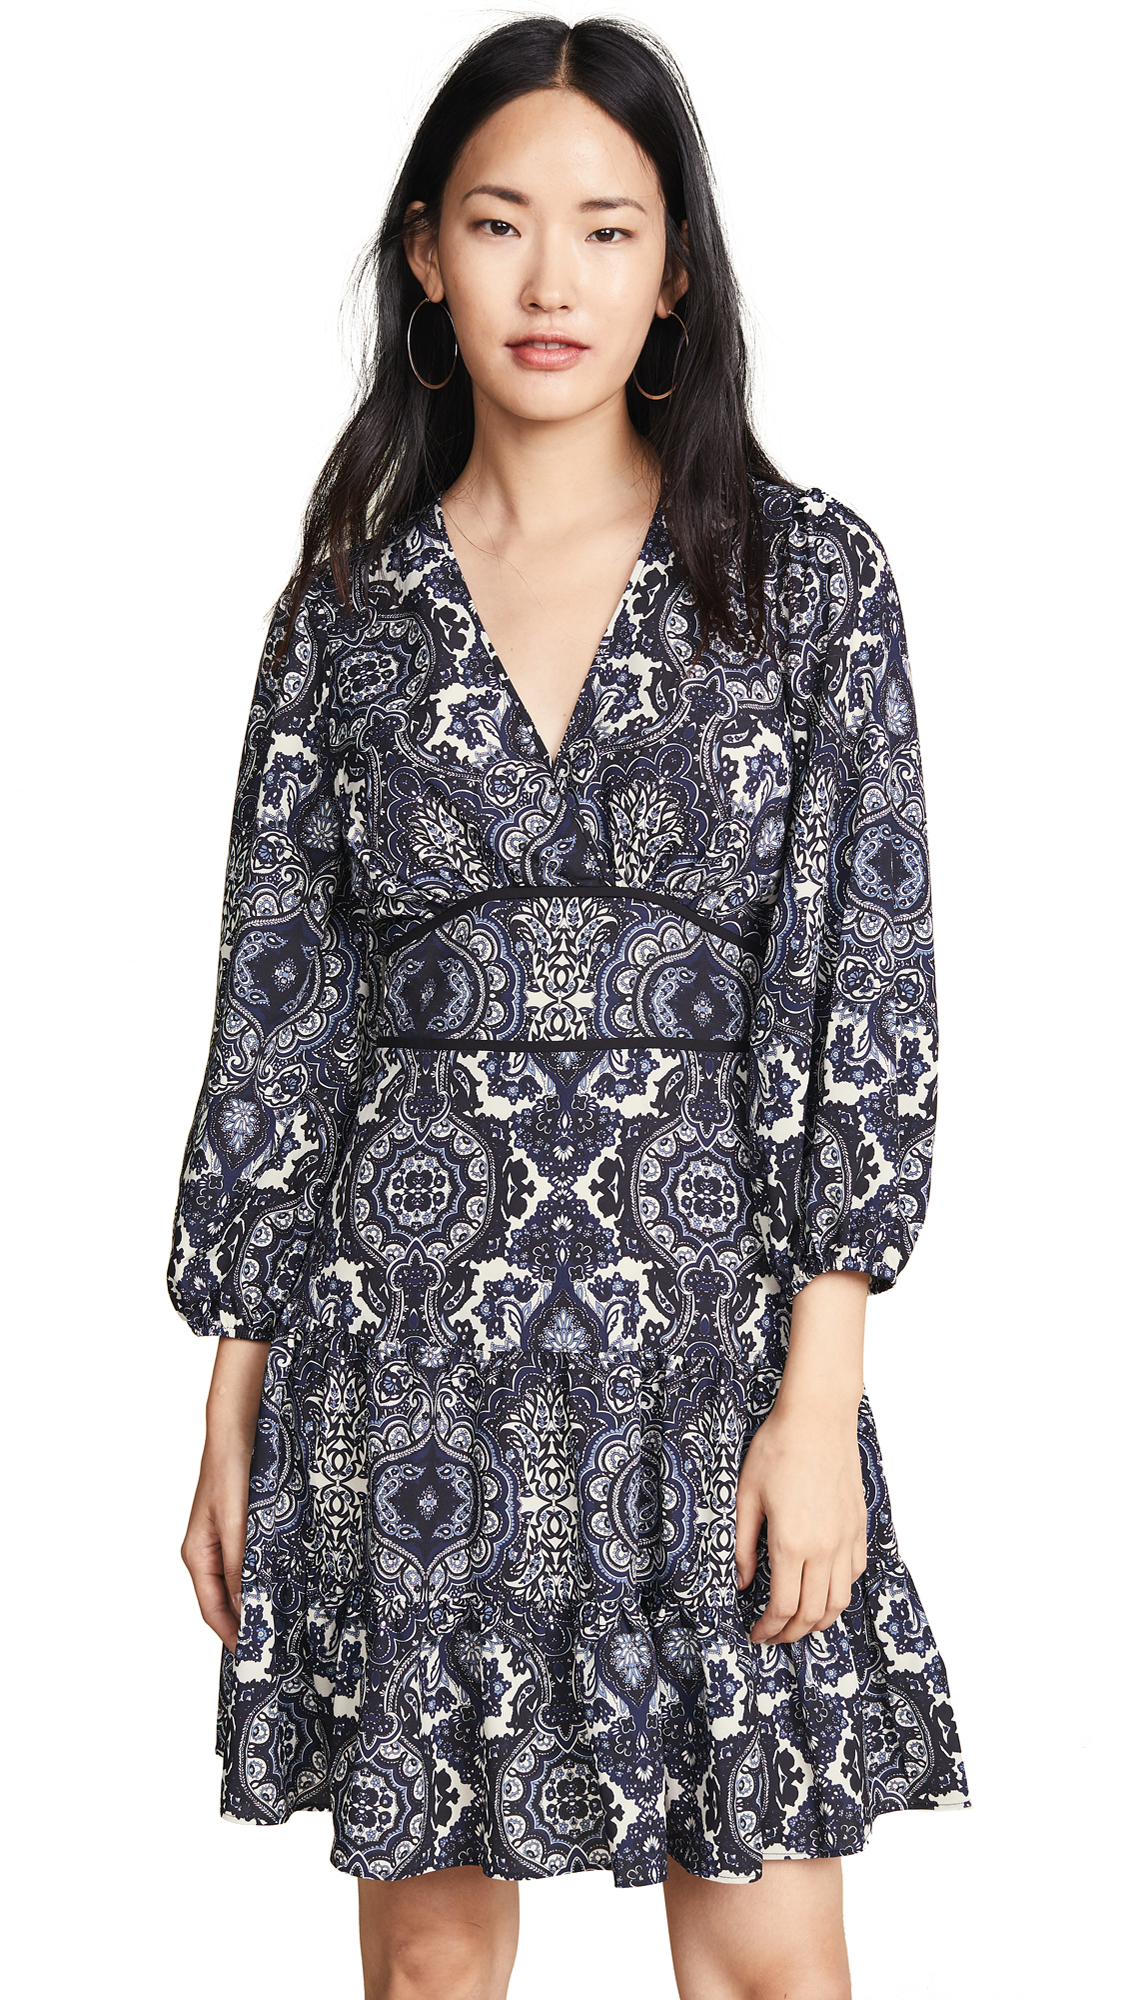 Shoshanna Emery Dress In Navy Multi